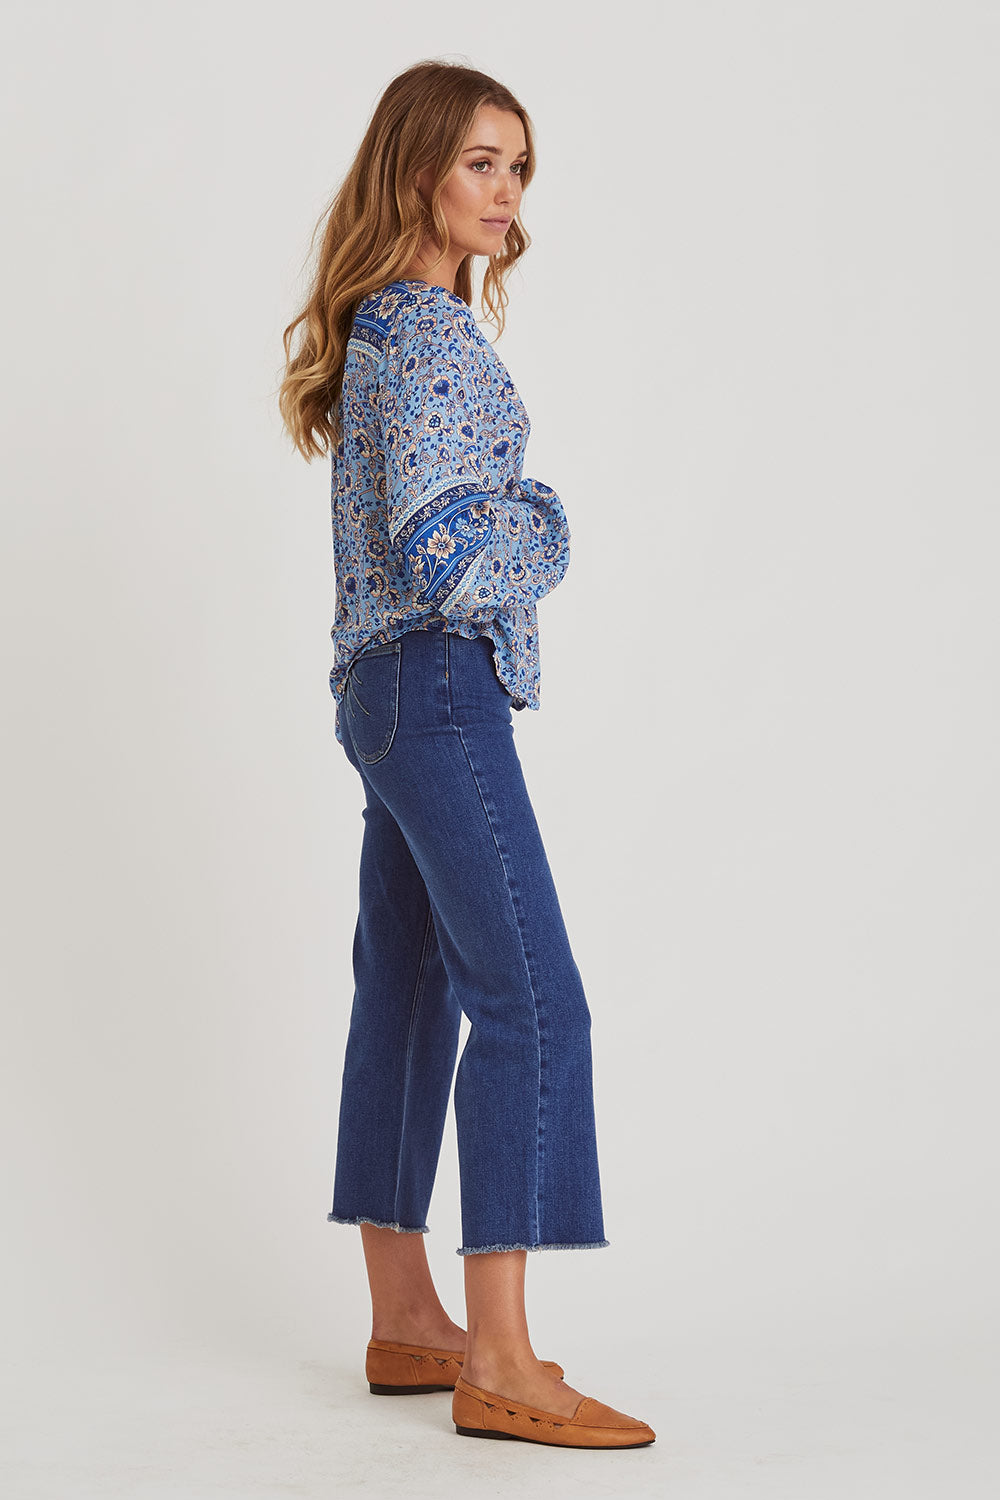 Esmee Blouse in Lakeside